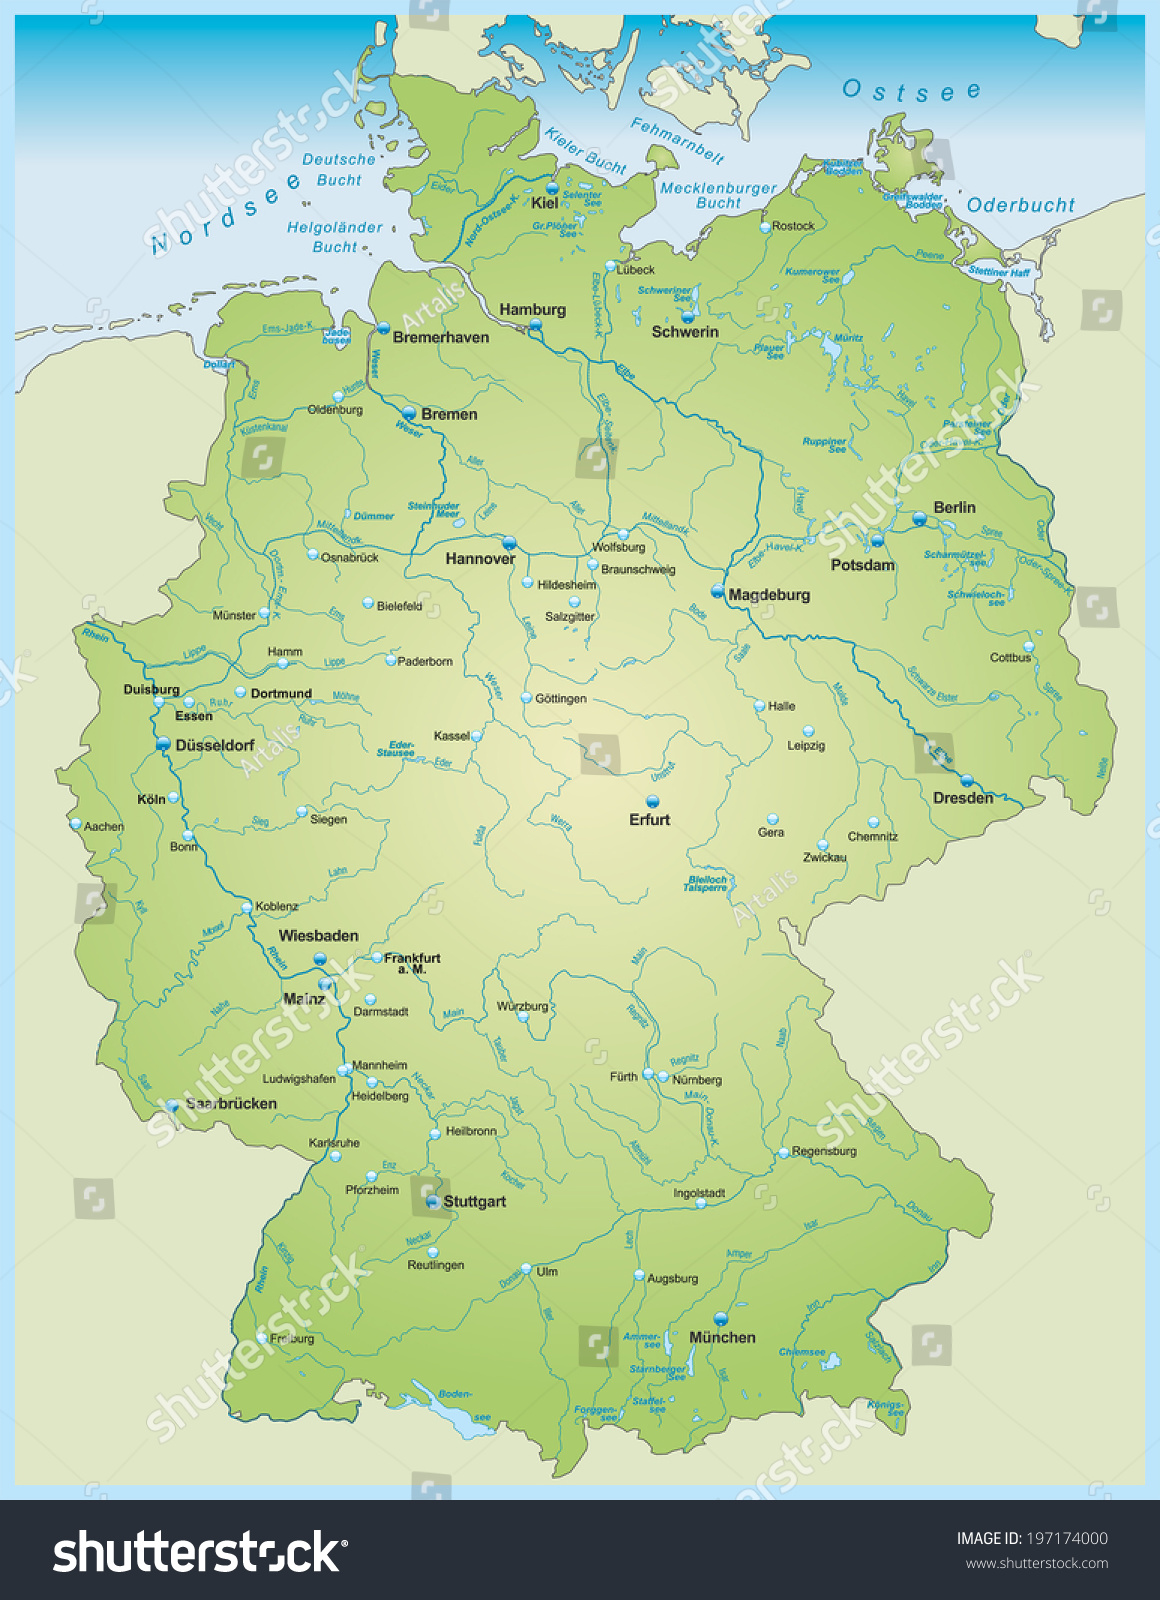 Map Of Germany With Rivers.Map Germany Lakes Rivers Stock Vector Royalty Free 197174000